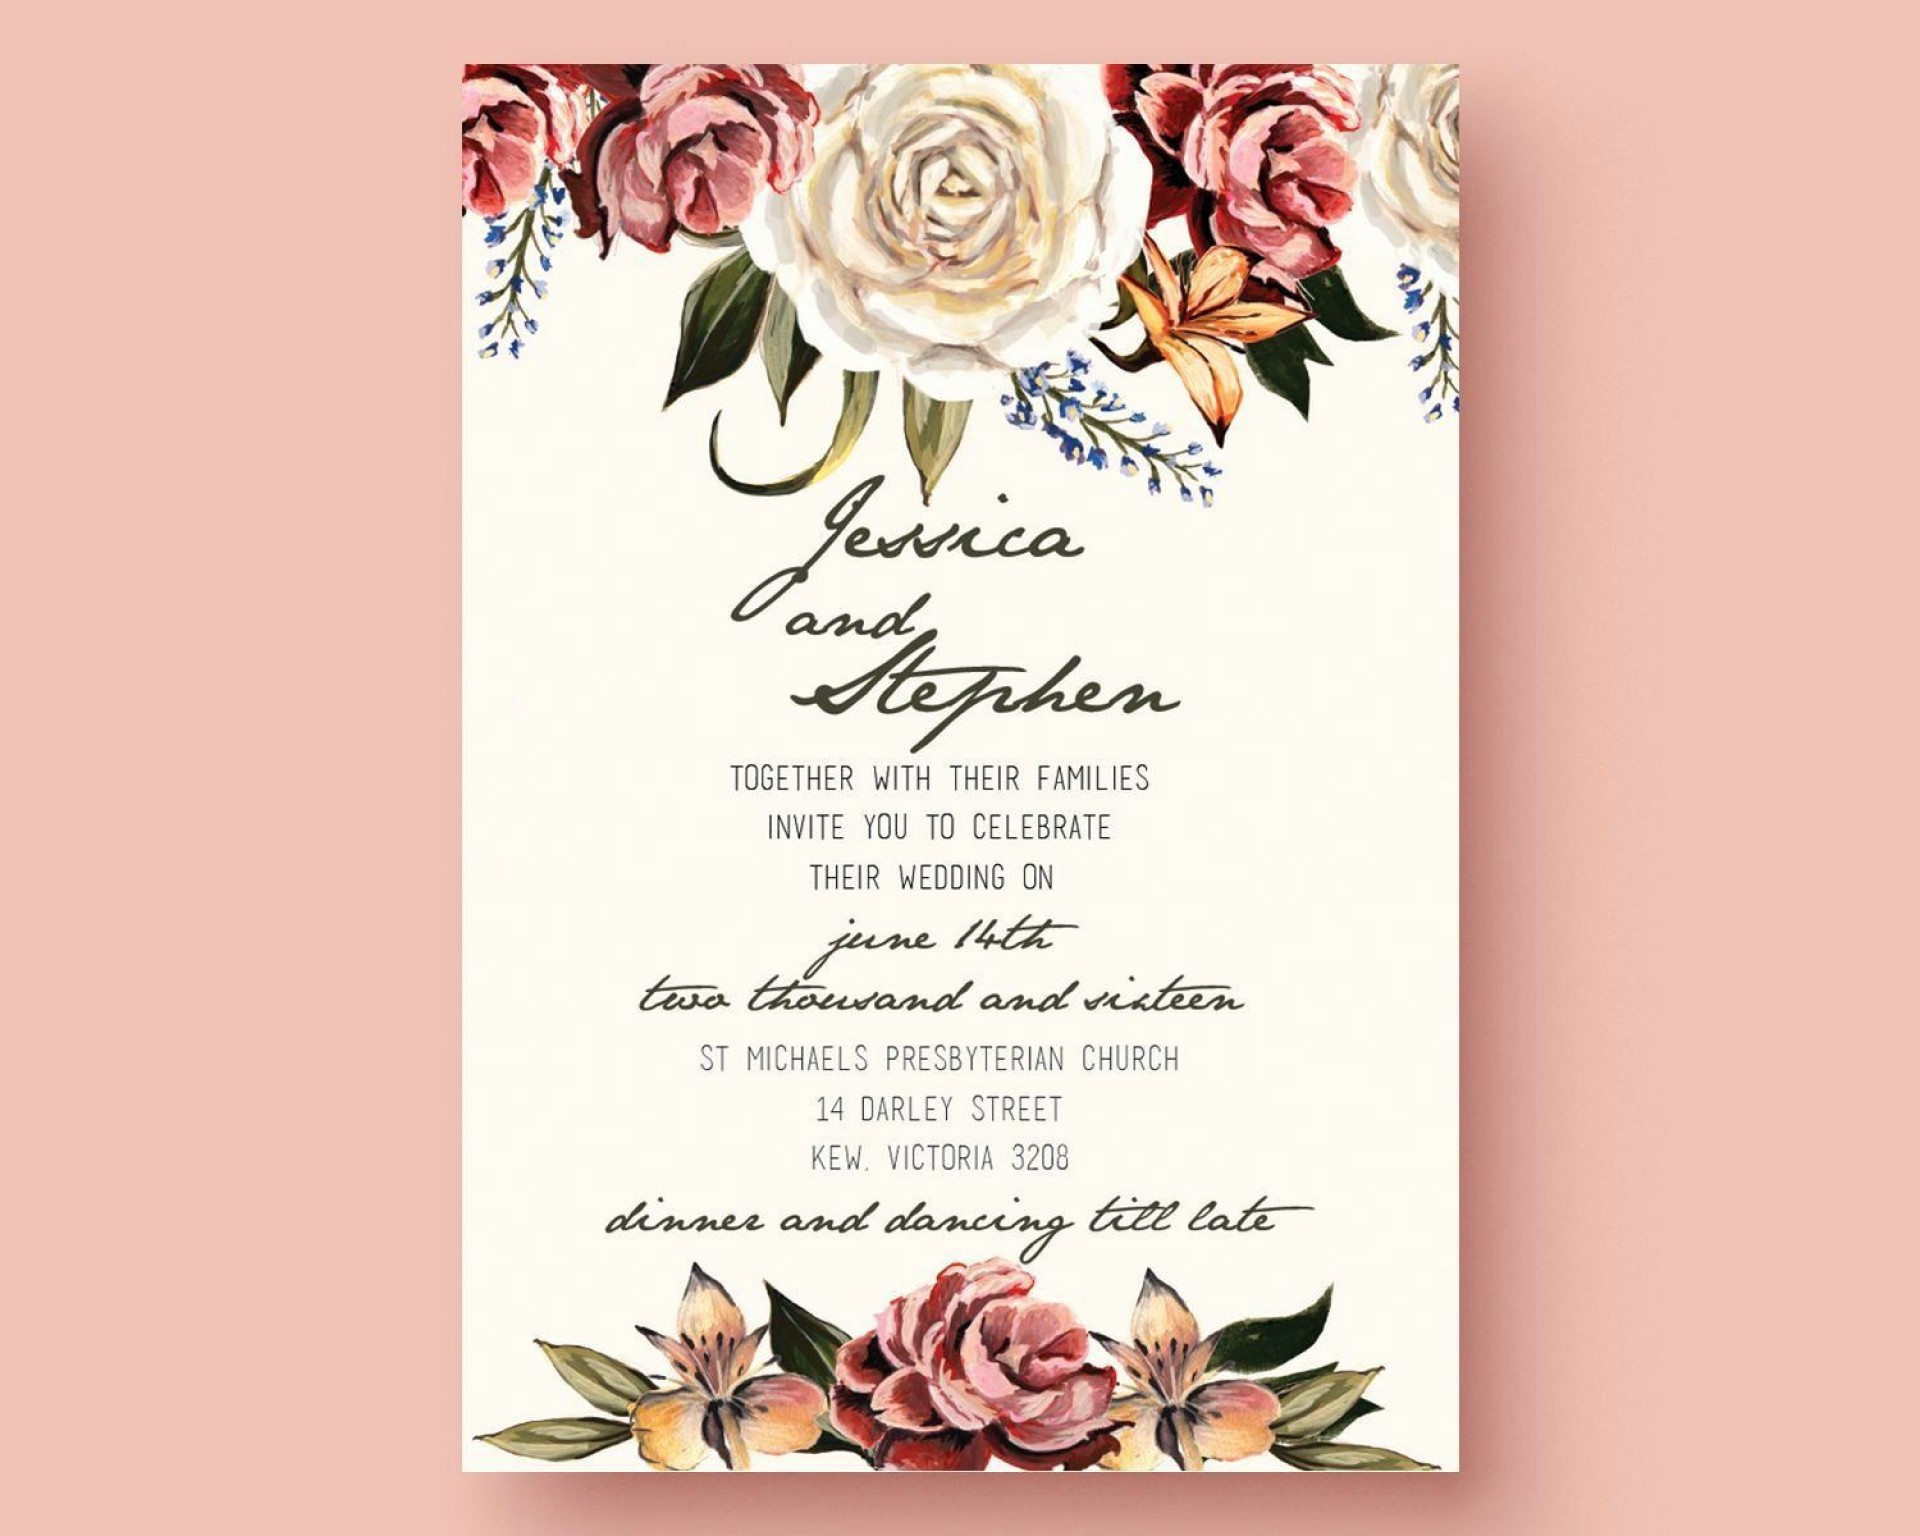 003 Impressive Free Download Wedding Invitation Template For Word Idea  Microsoft Indian1920